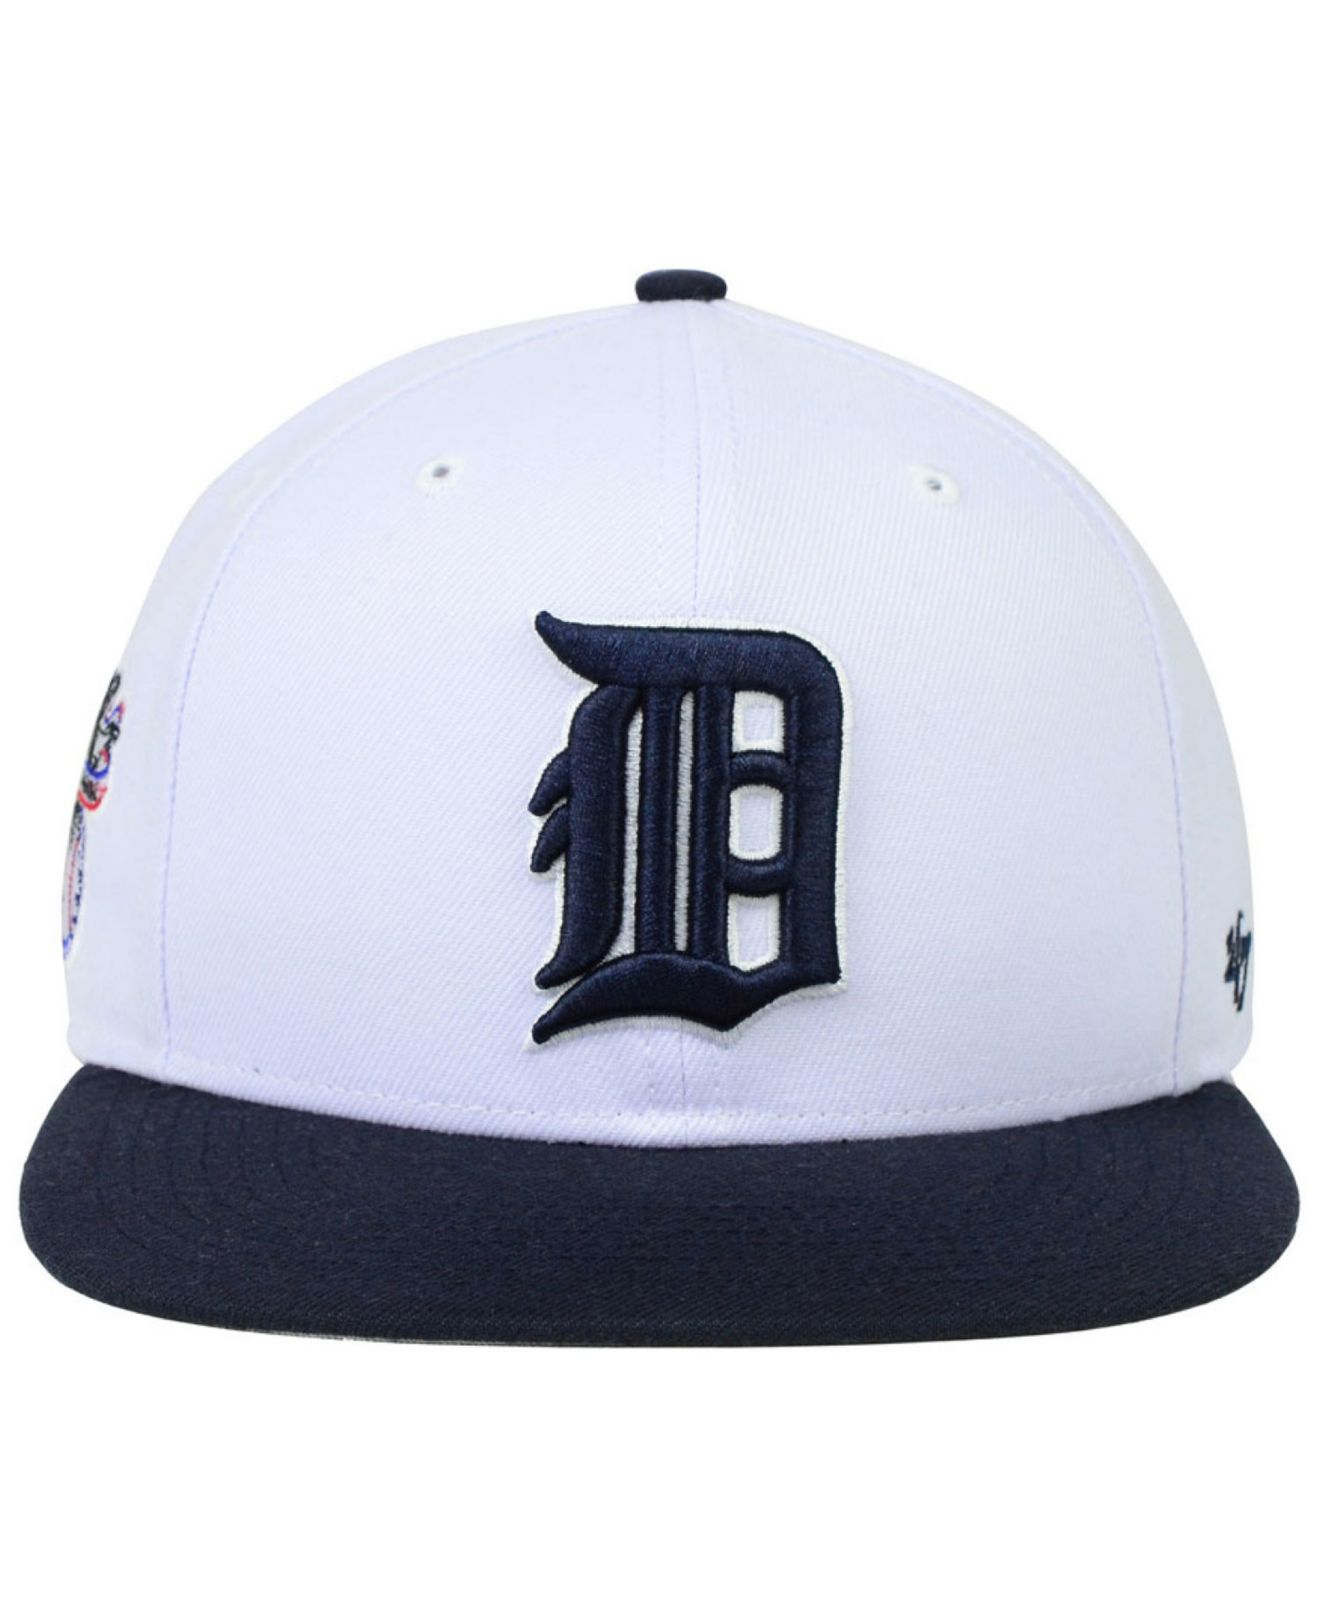 new arrivals 17658 78180 ... uk italy lyst 47 brand detroit tigers sure shot snapback cap in white  for men 1989b